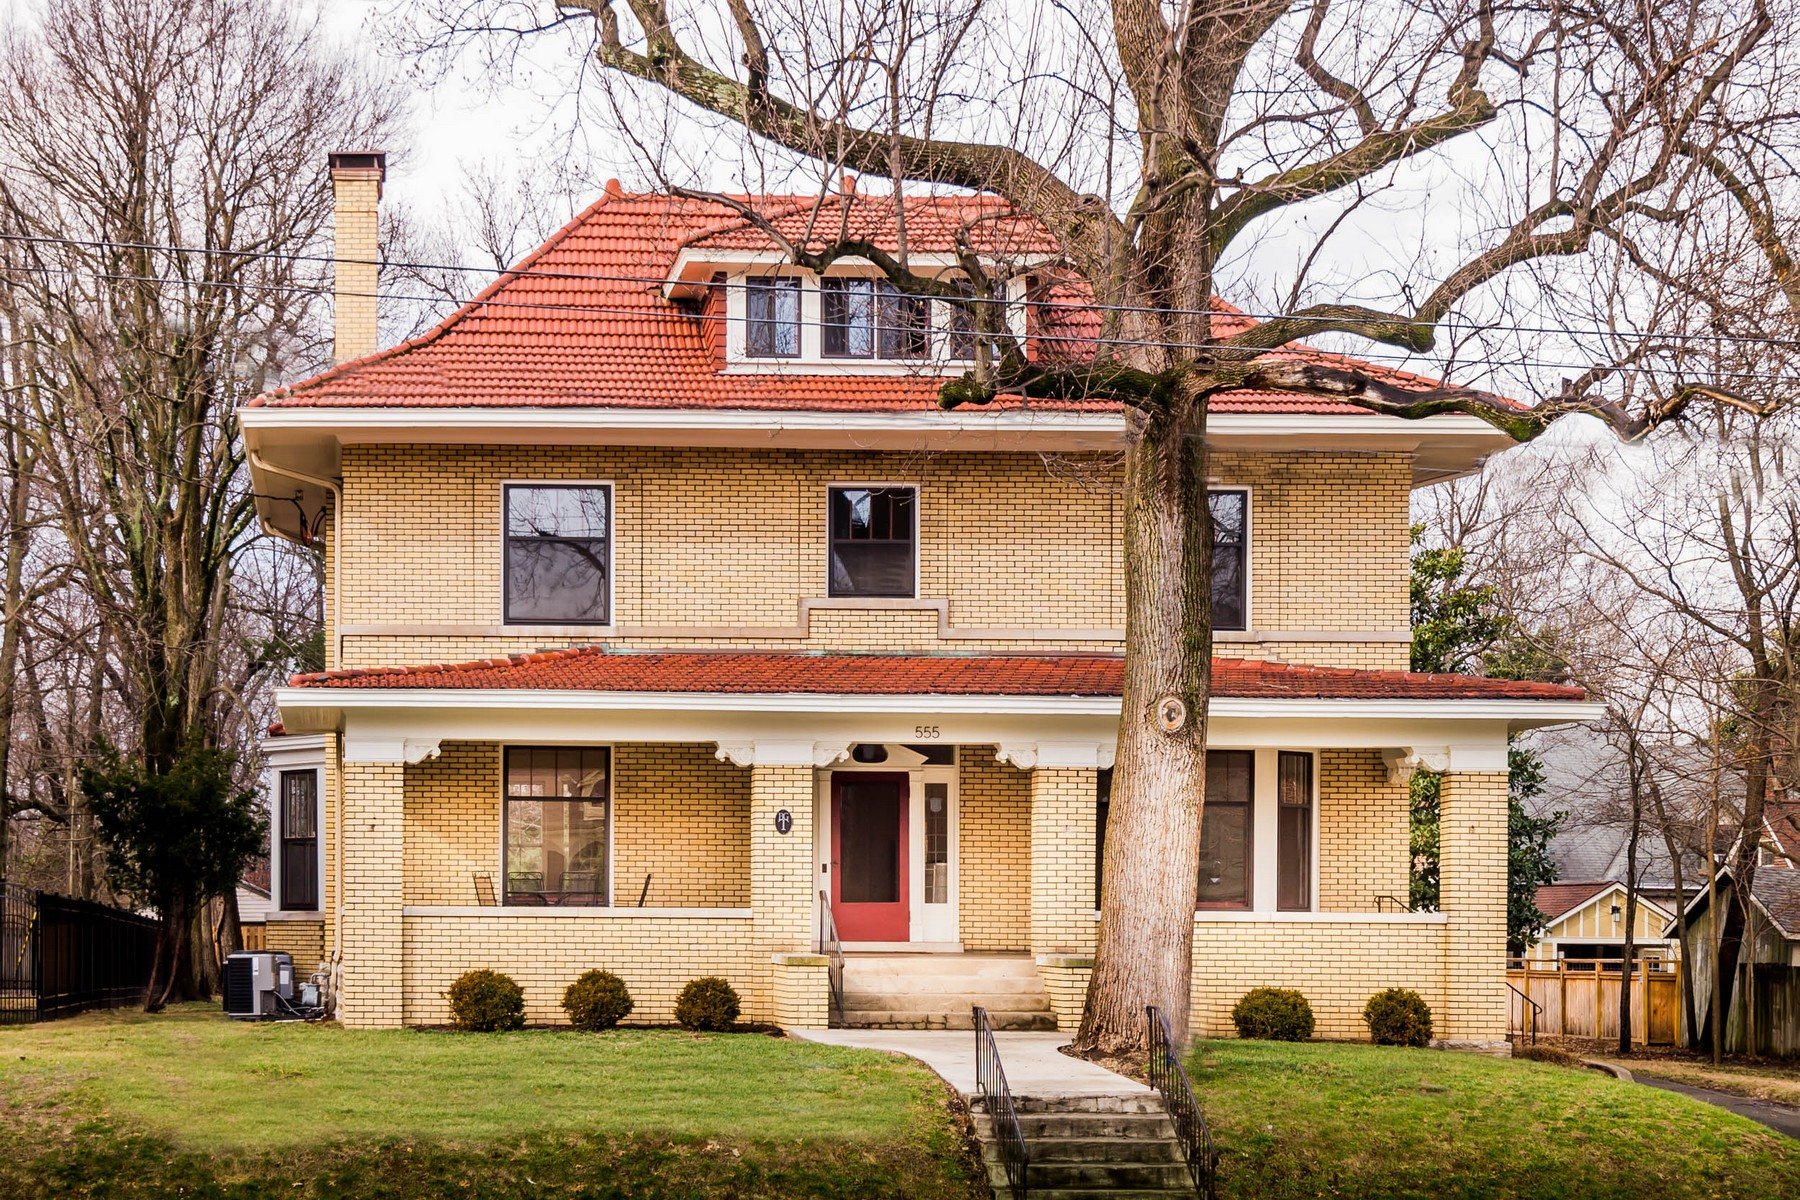 Casa Unifamiliar por un Venta en 555 N. Broadway Lexington, Kentucky, 40508 Estados Unidos